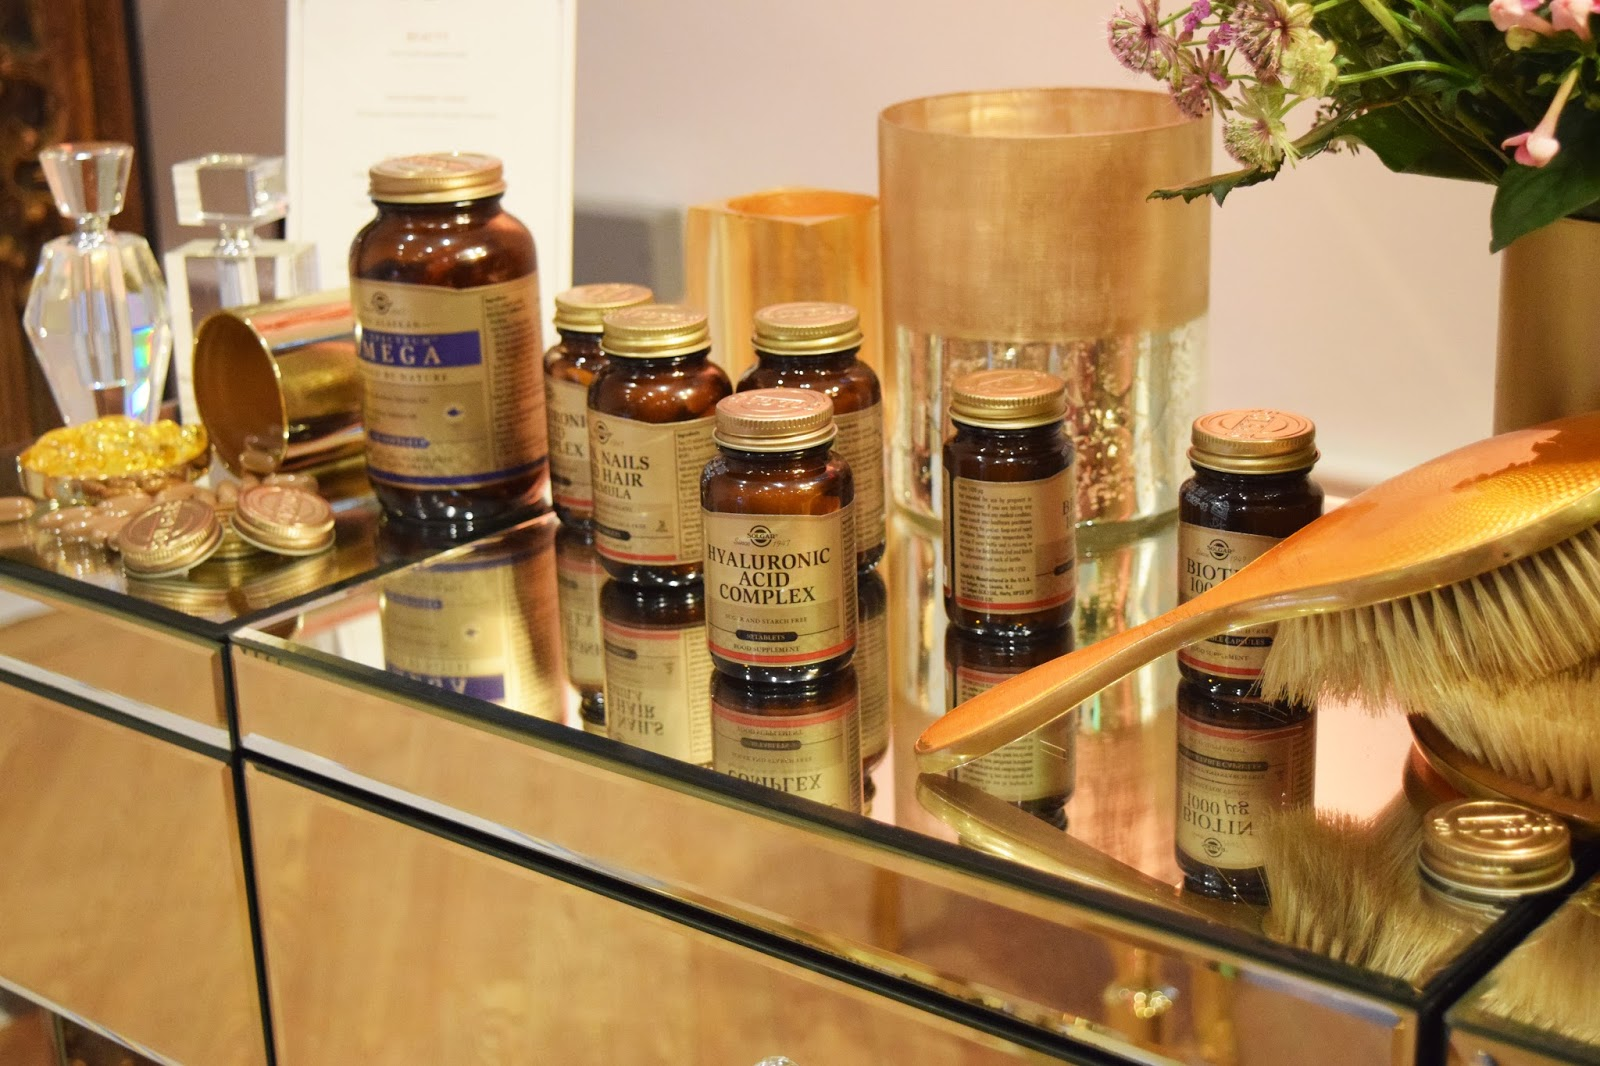 a stand showing a range of supplements